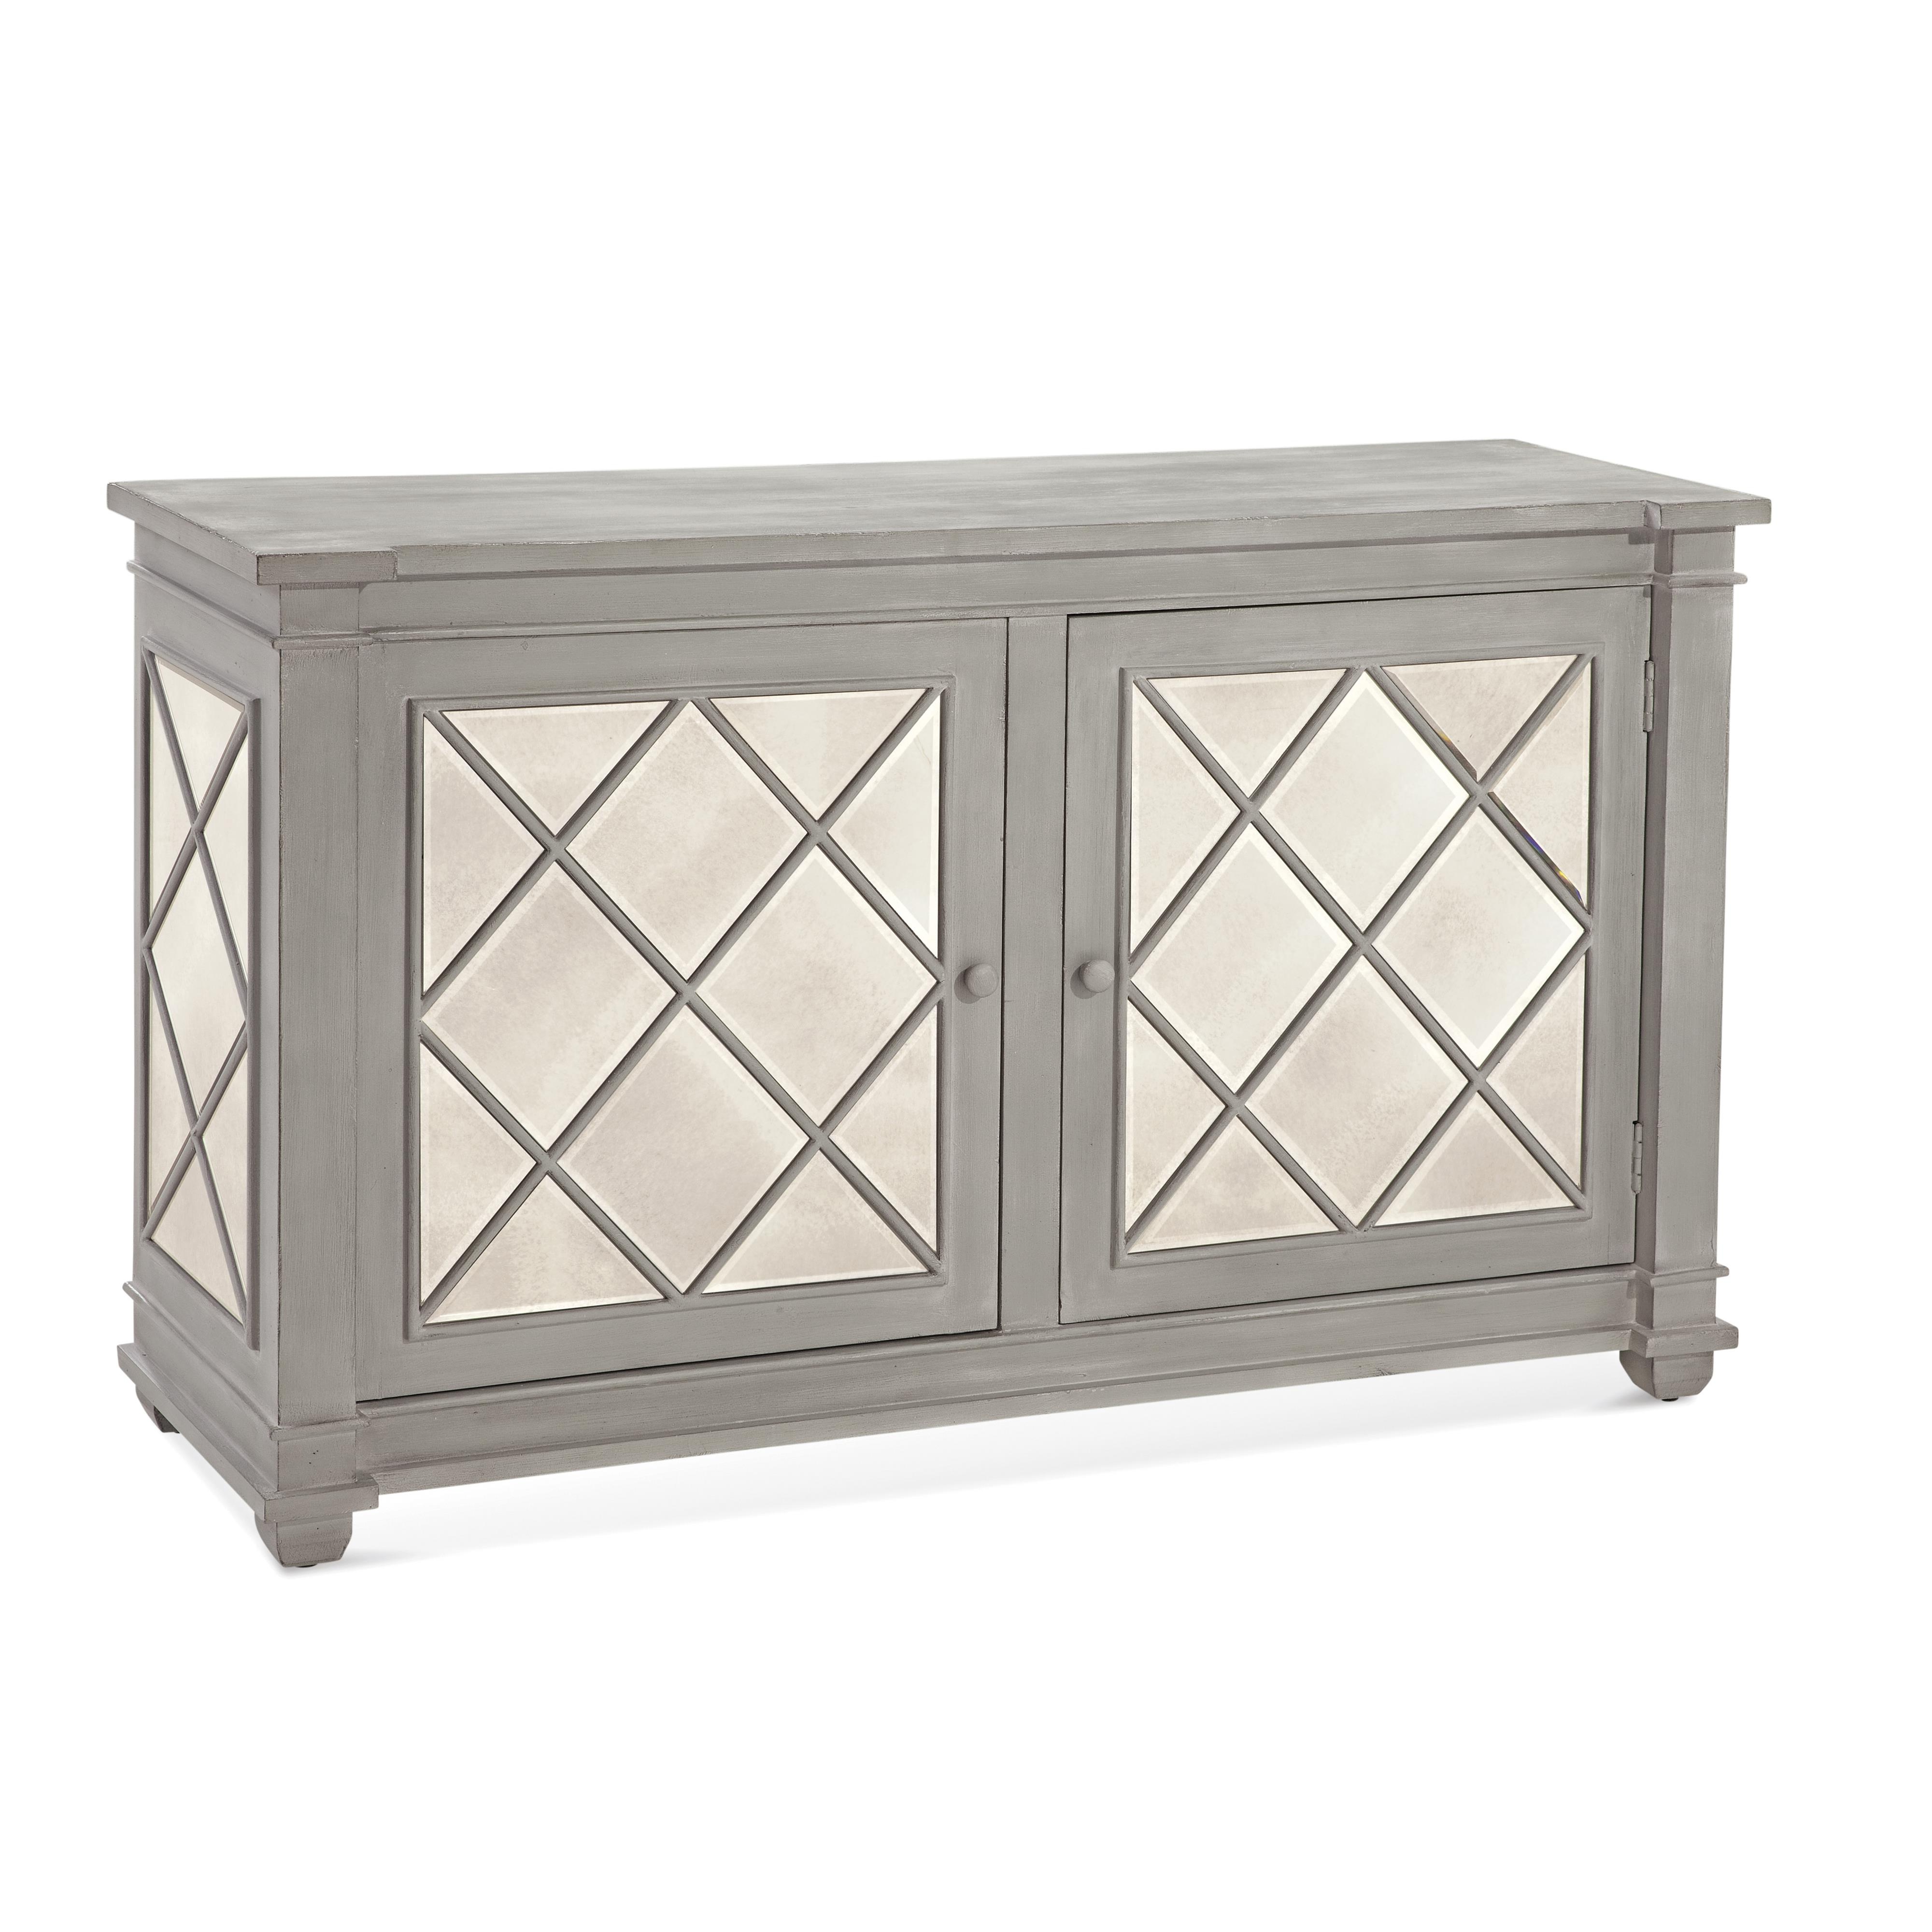 In-Town Ada Serving Cabinet by Bassett Mirror at Rooms for Less